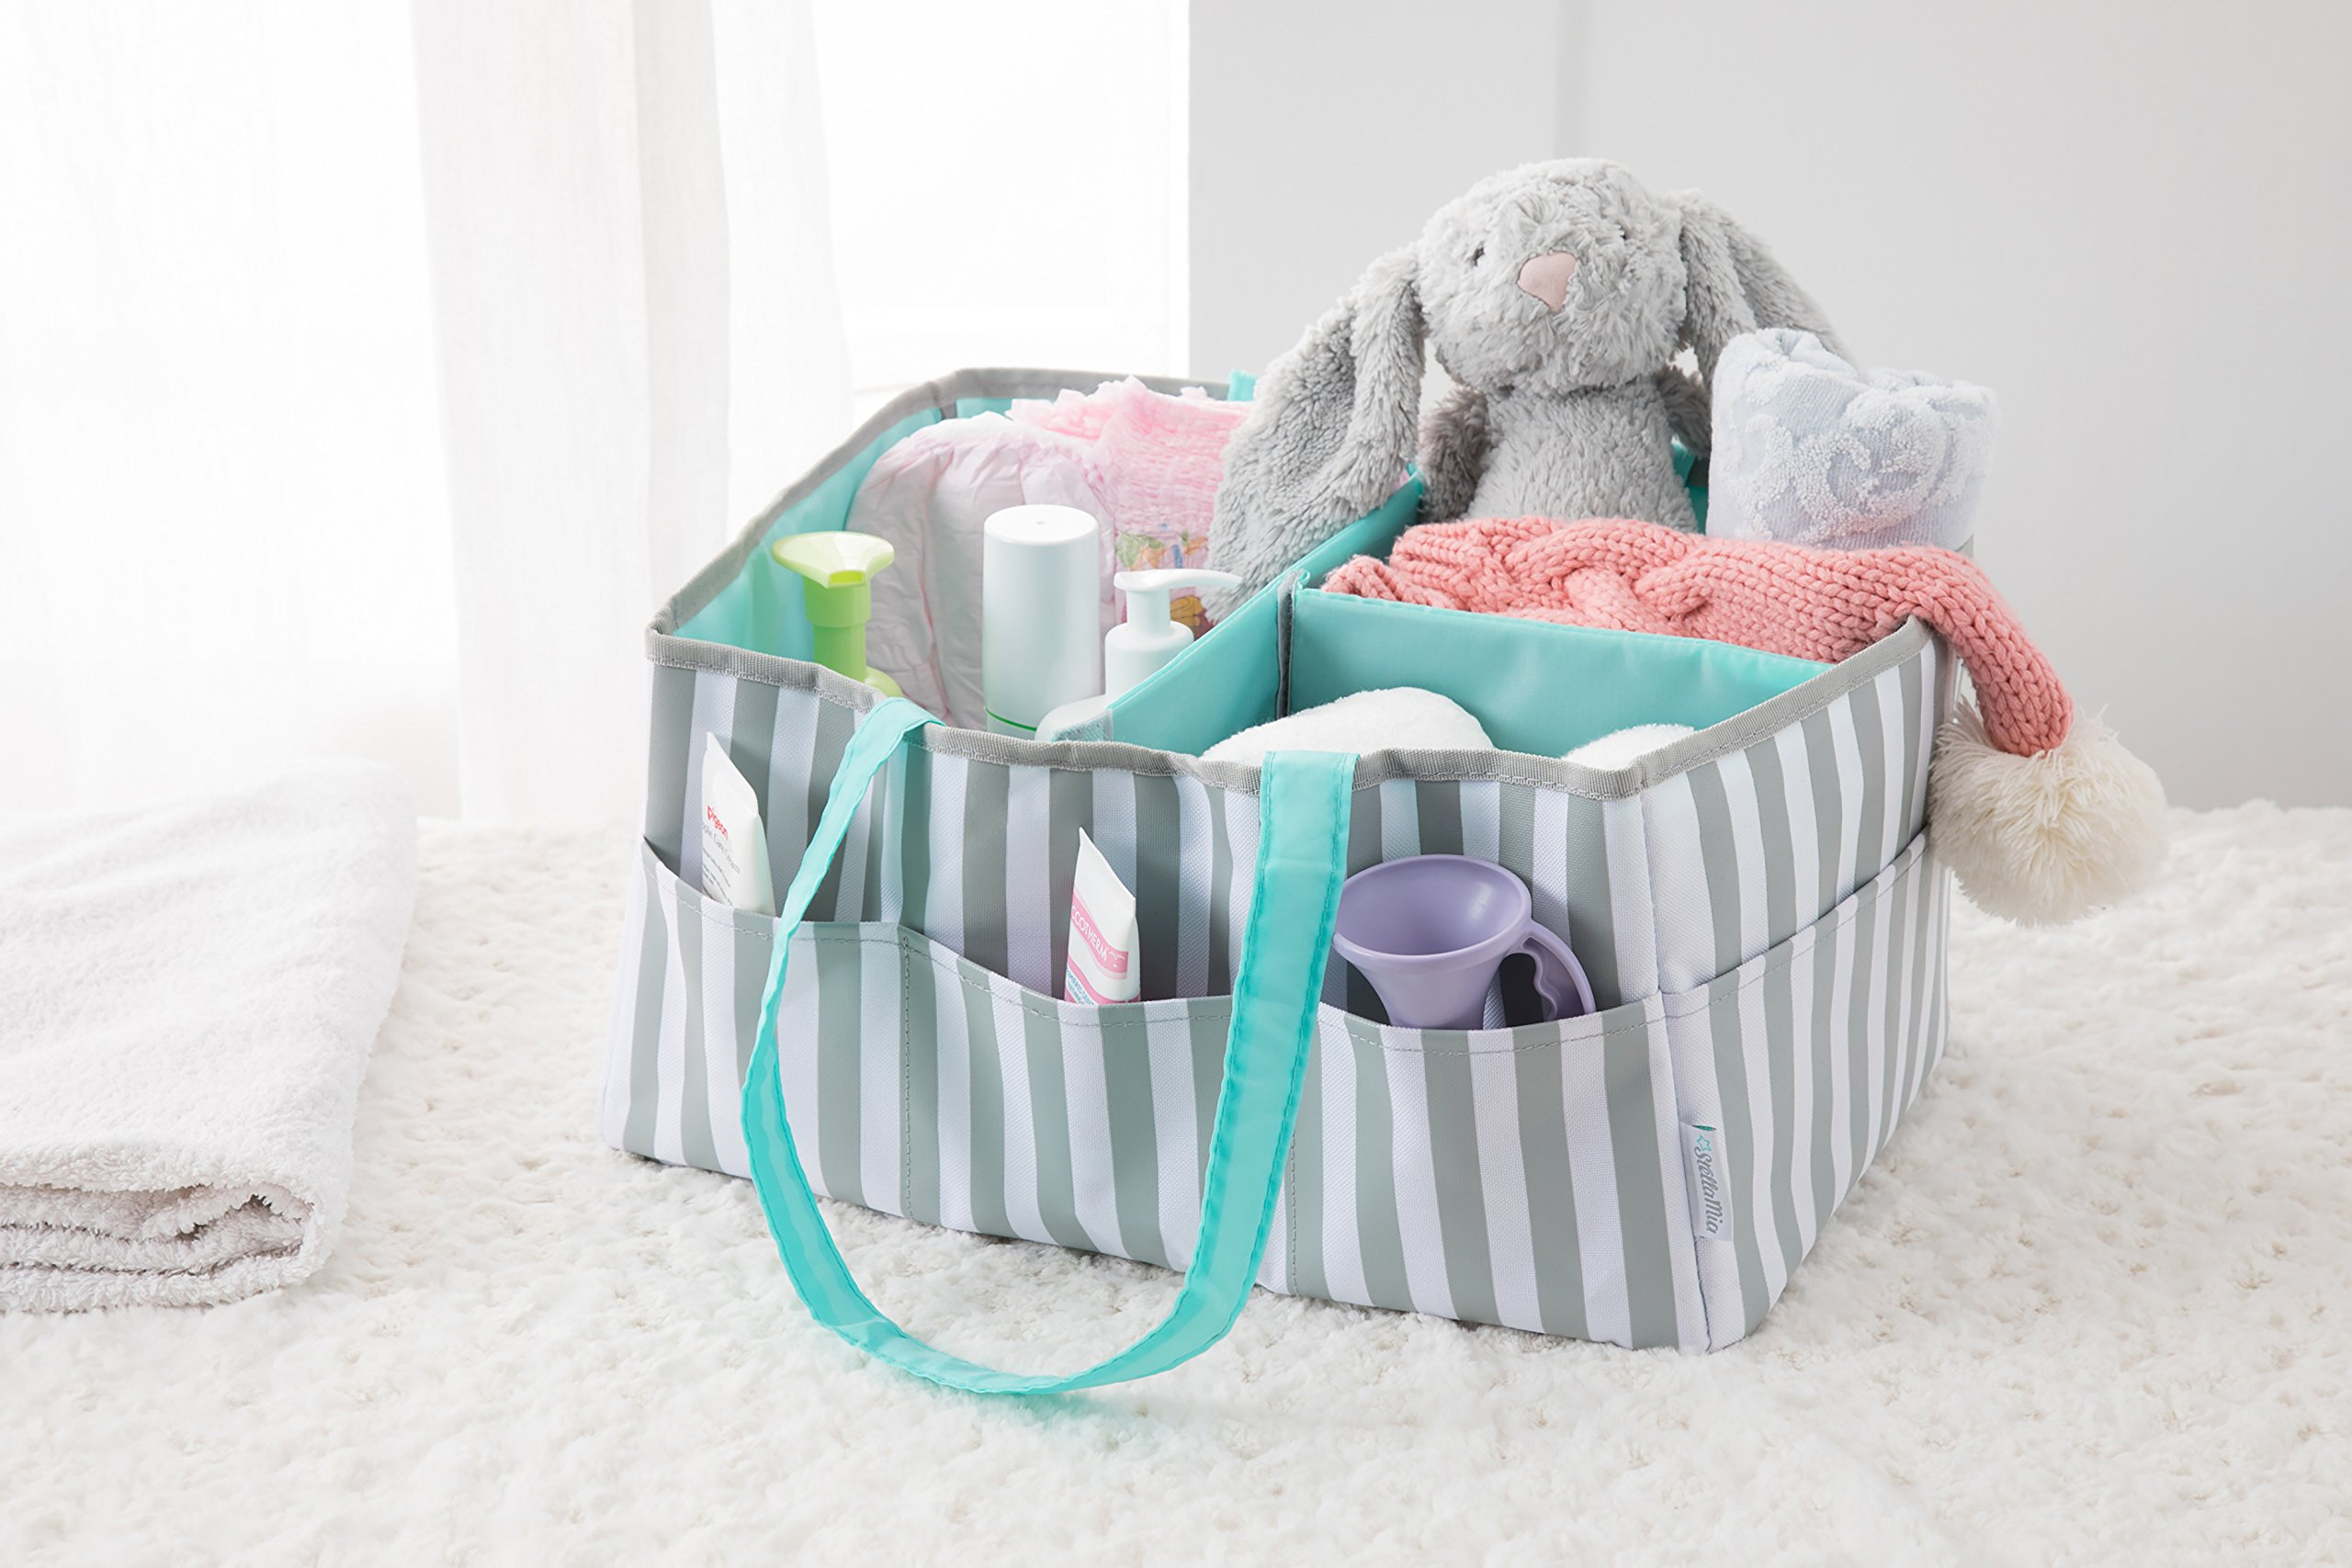 Stella Mia Diaper Caddy [Bonus Changing Pad] - Extra-Large Portable Nursery Diaper Stacker - Changing Table Organizer for Baby Essentials - Perfect Baby Shower Gift, Baby Registry Must Have by Stella Mia (Image #6)